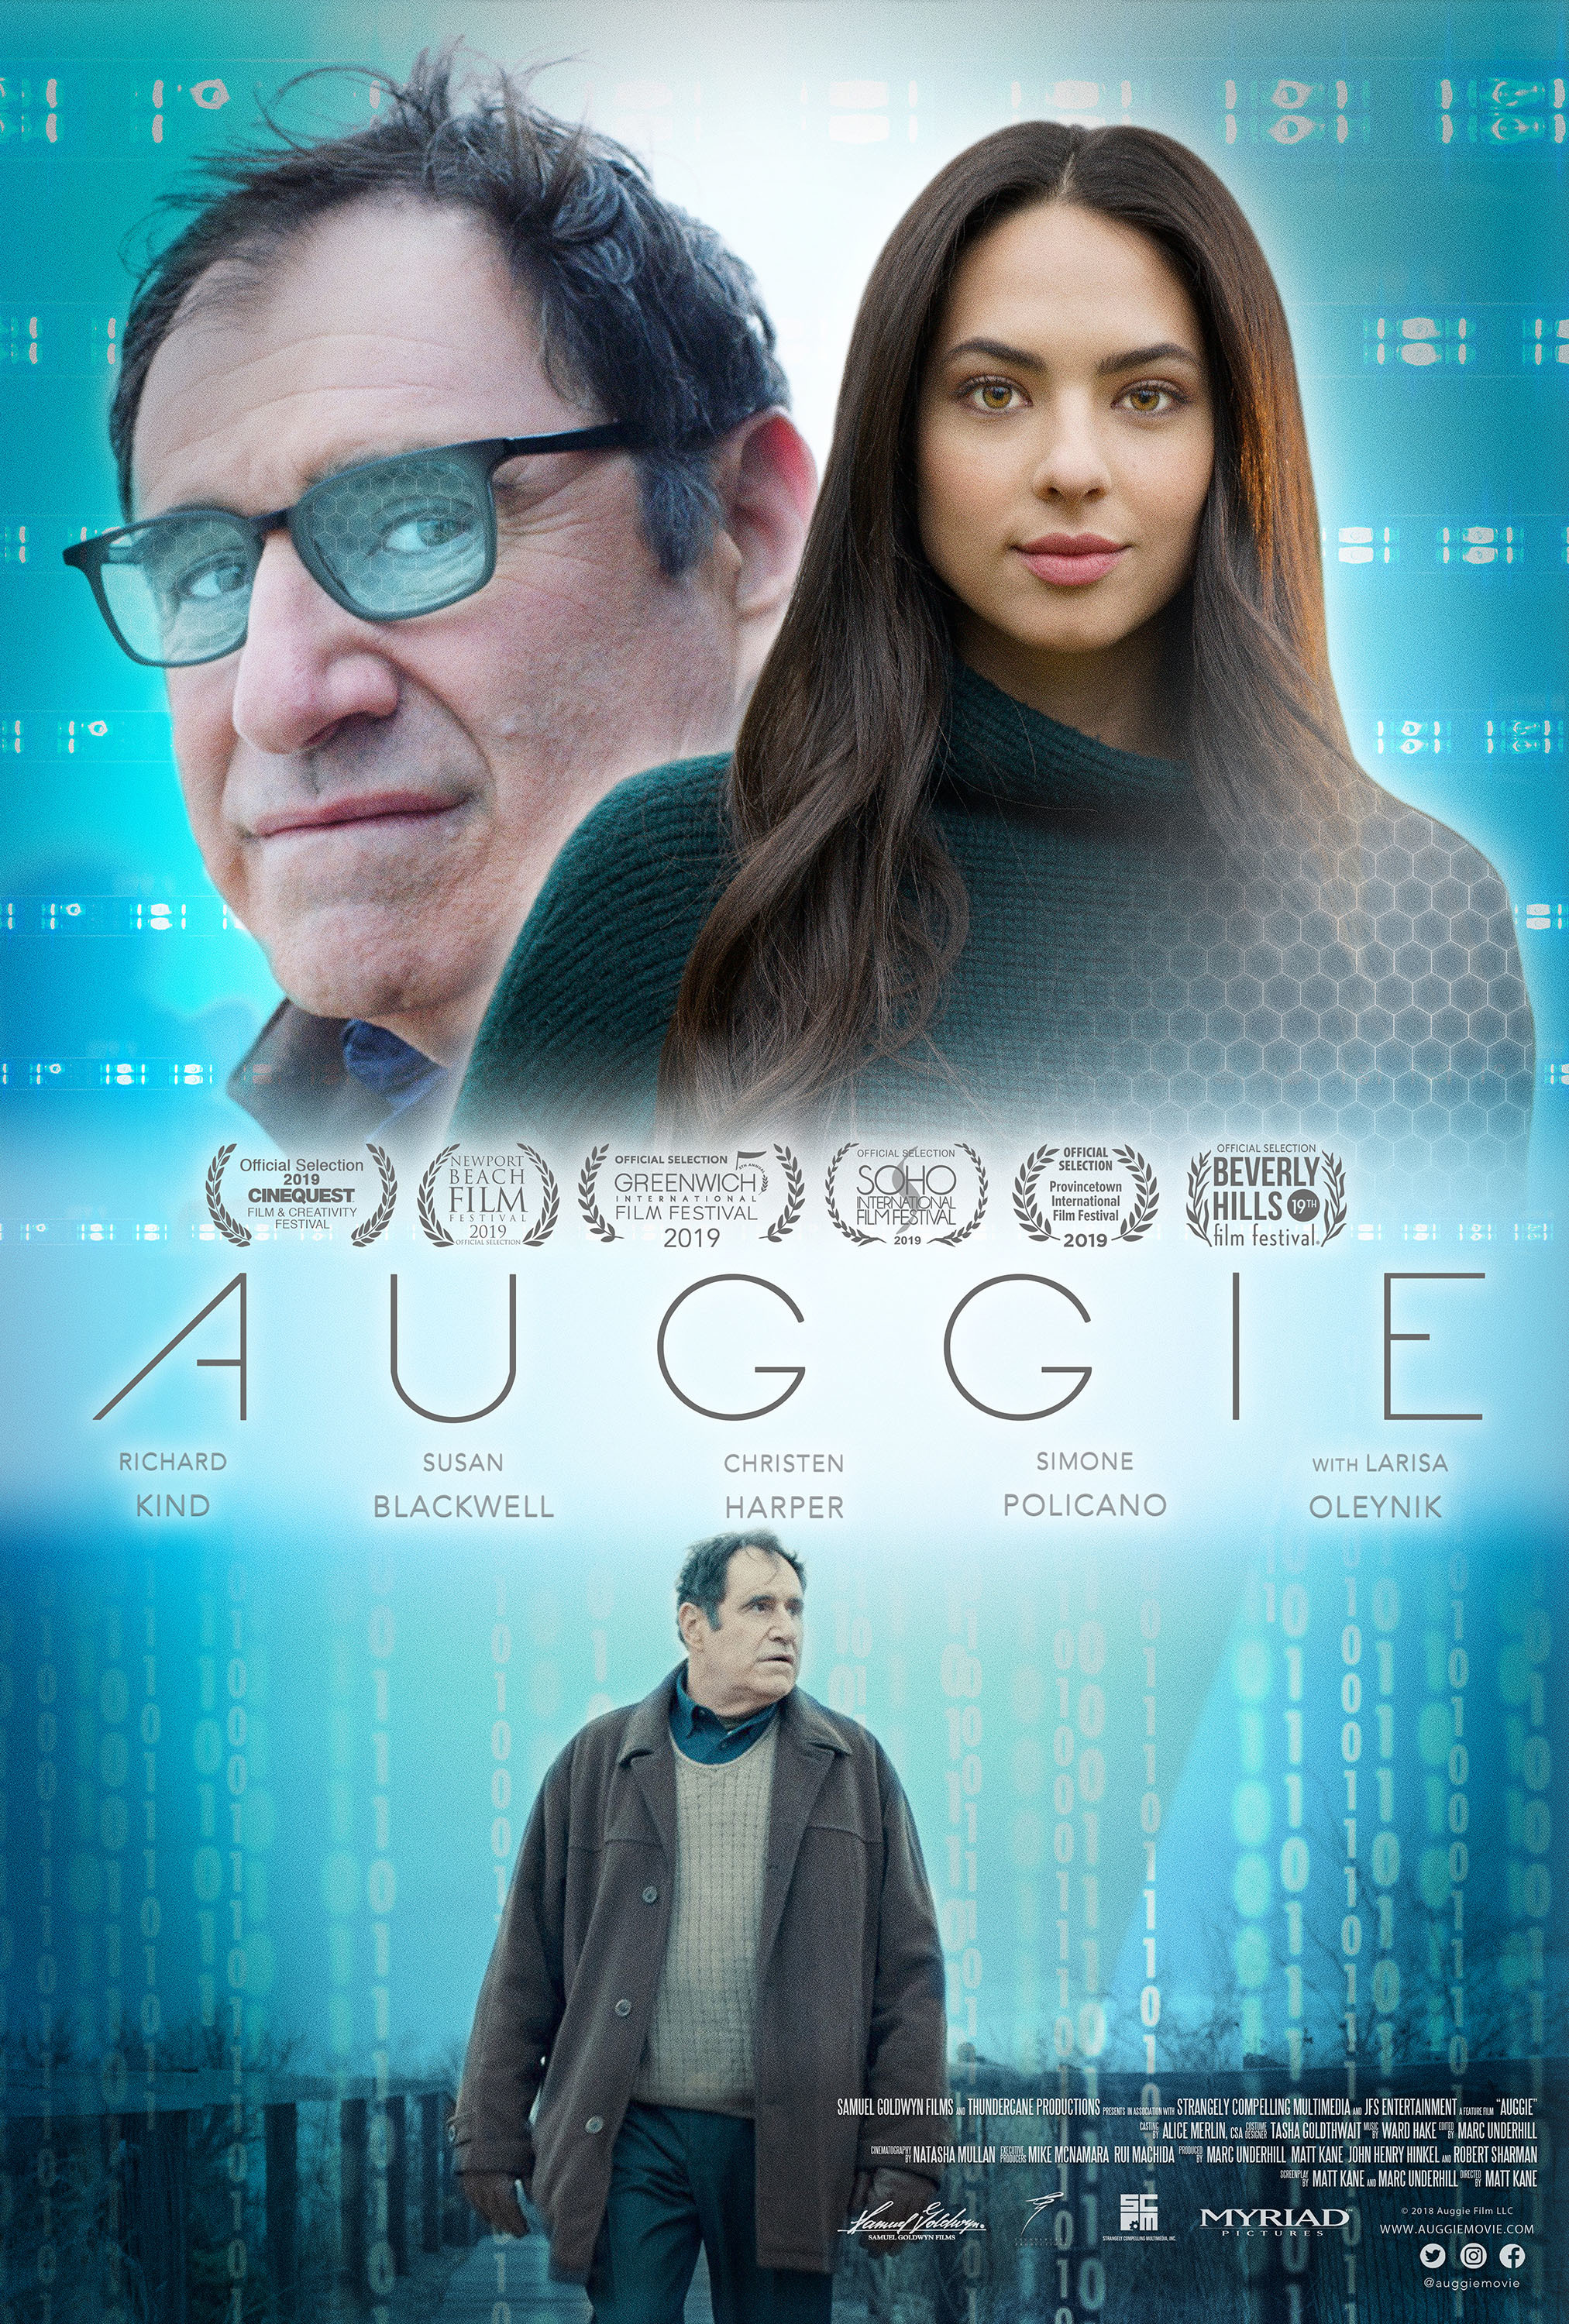 Richard Kind and Christen Harper in Auggie (2019)